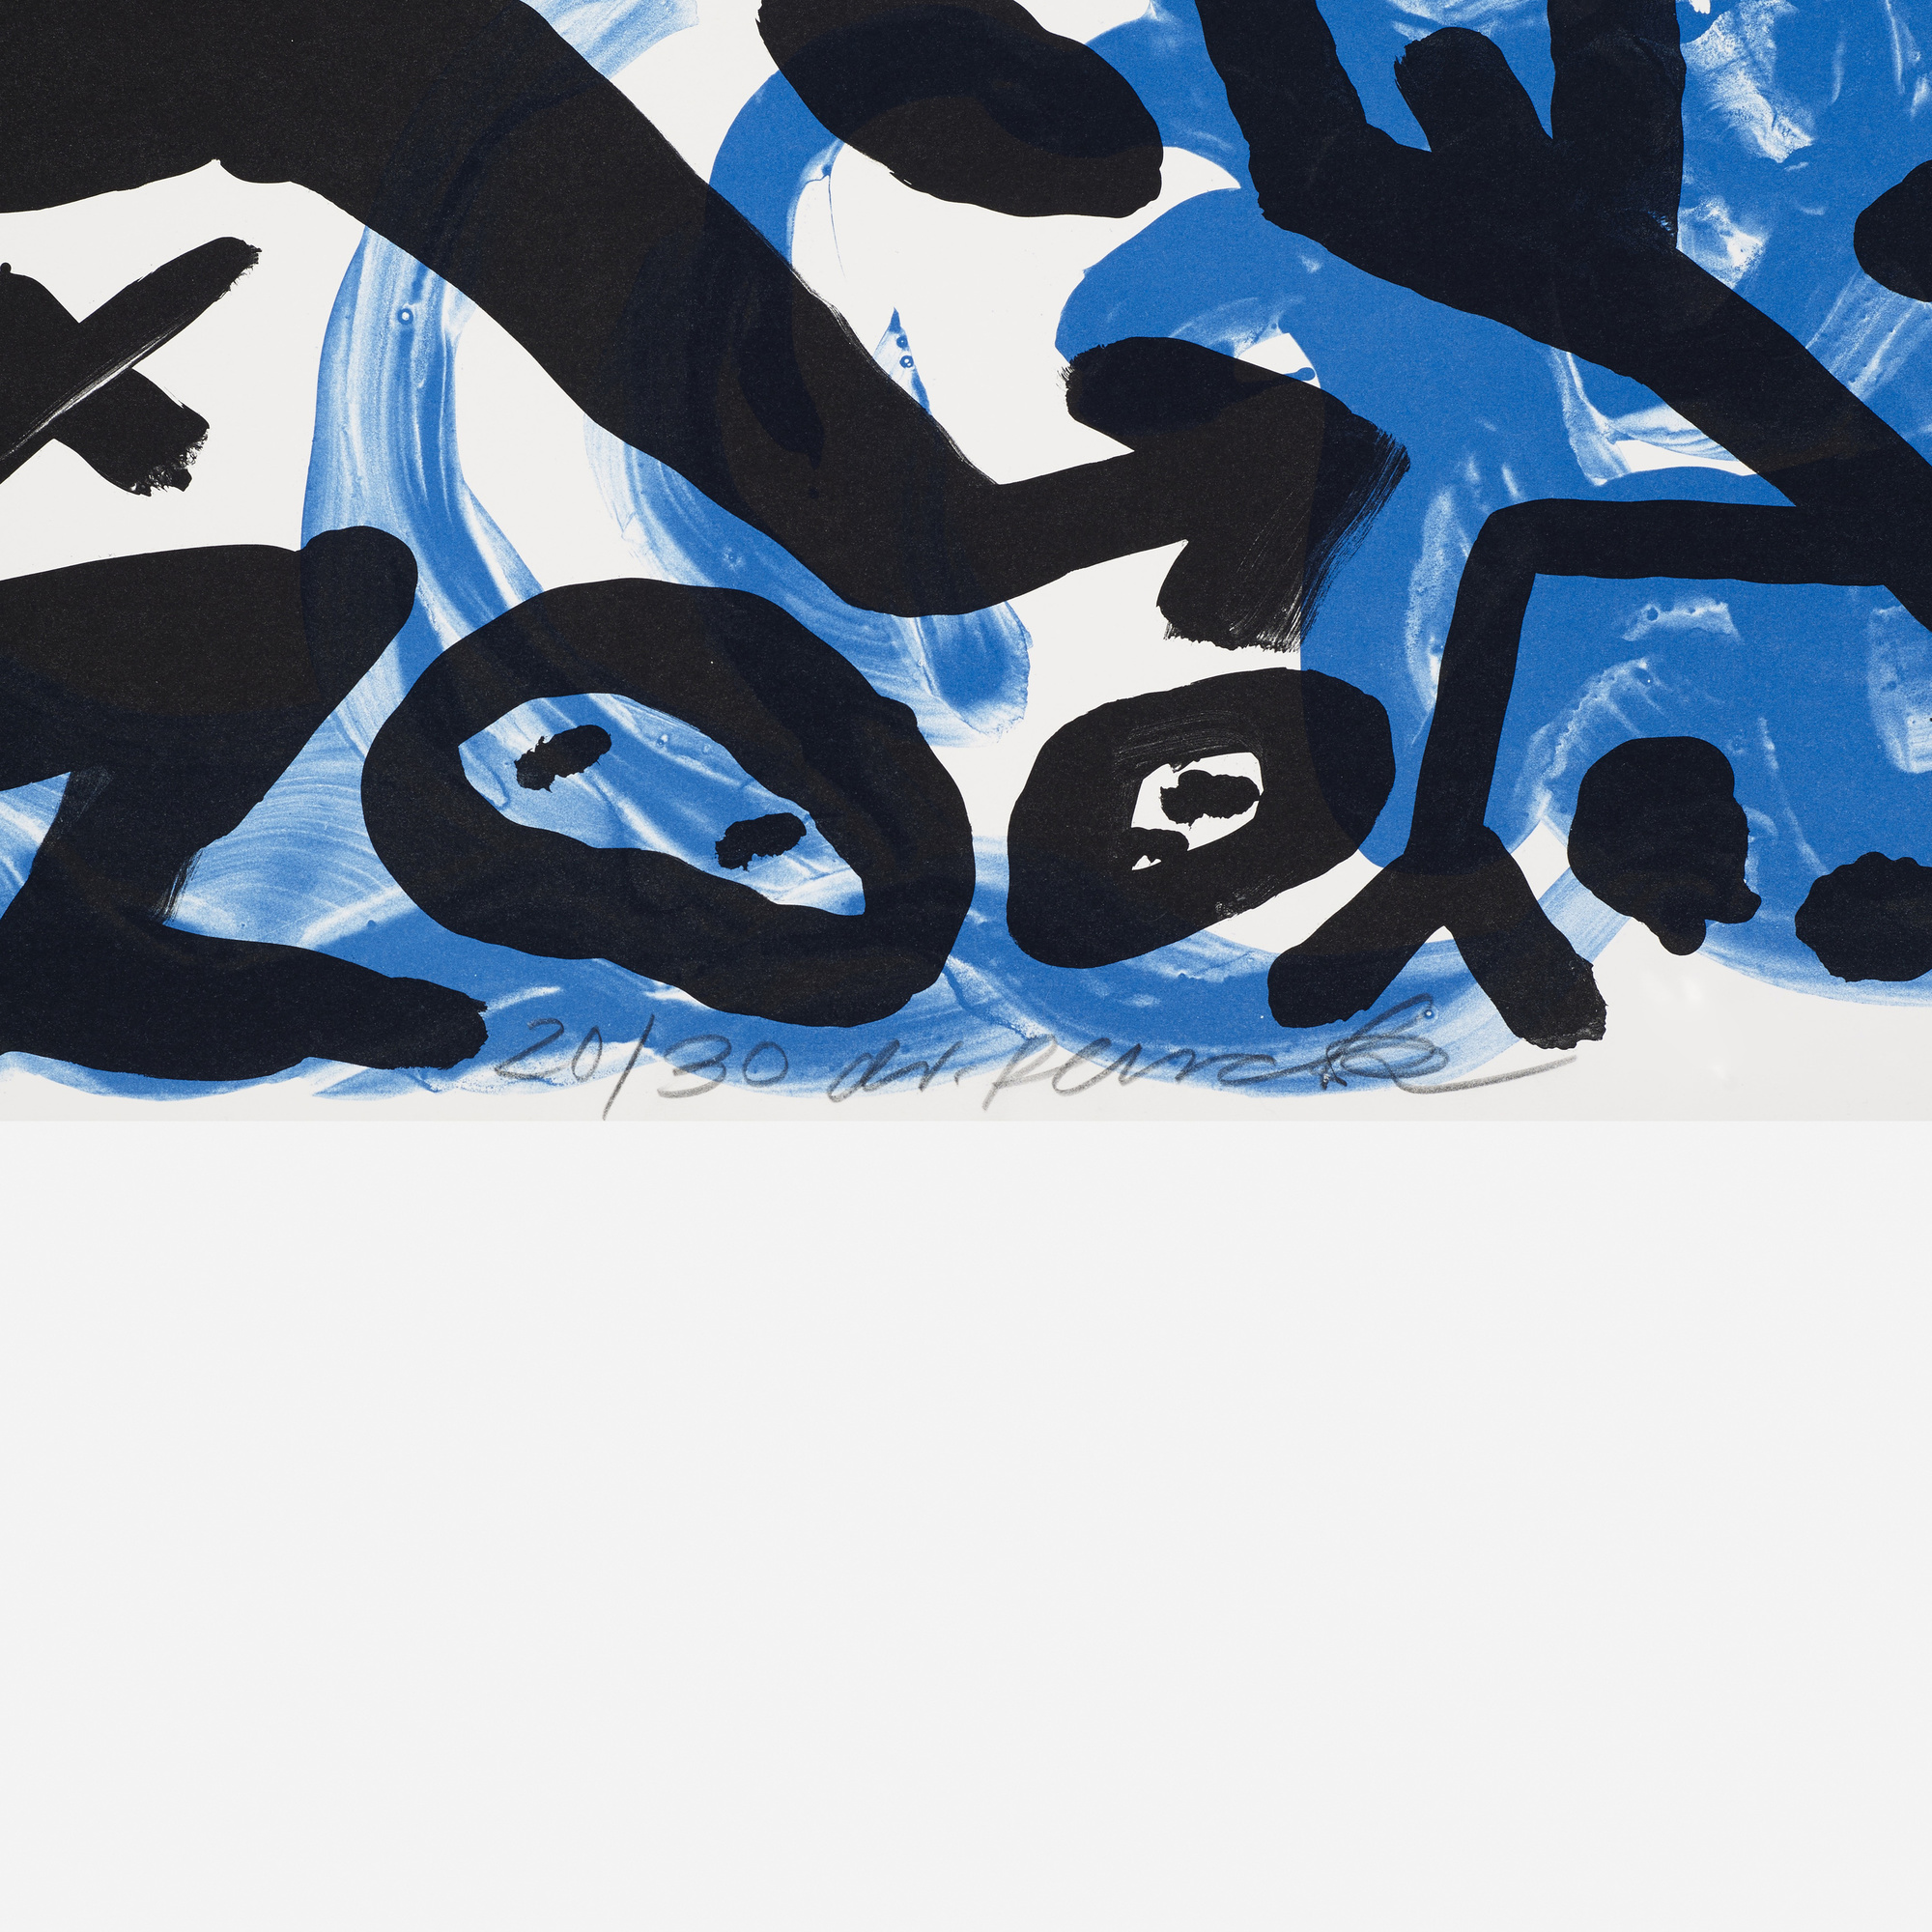 219: A. R. Penck / The Situation Now (Night) (3 of 3)